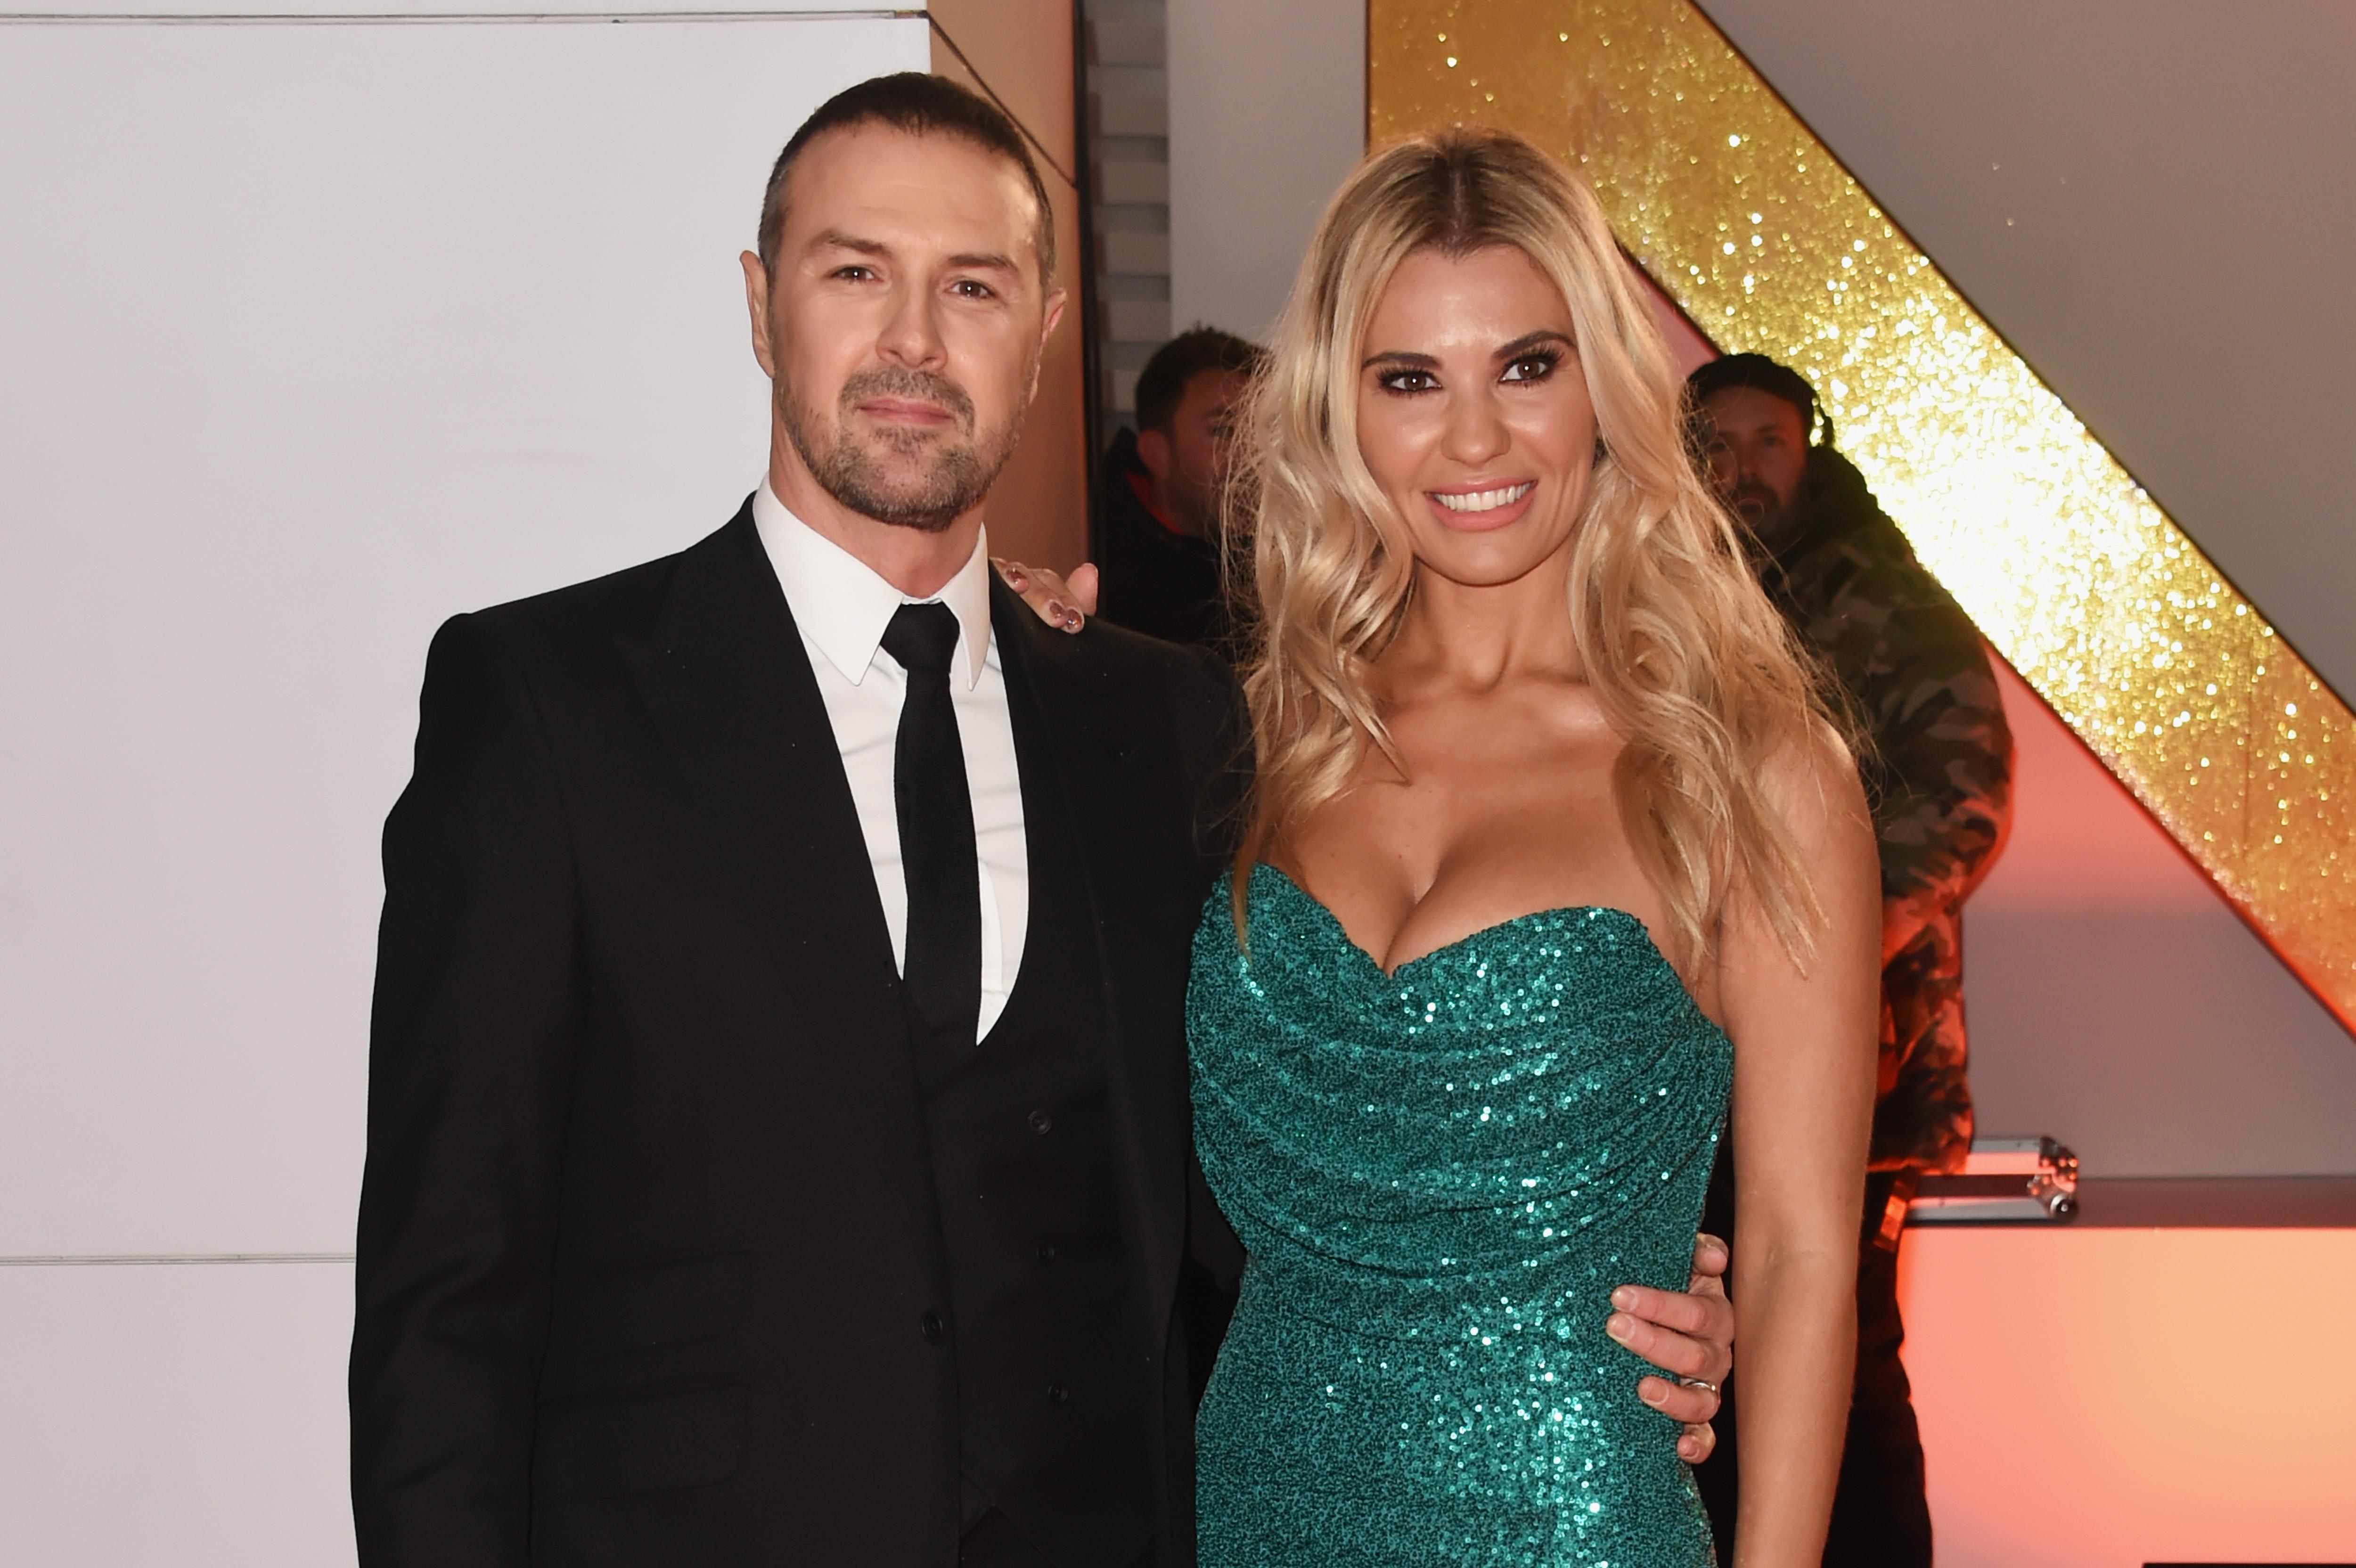 Christine and Paddy McGuinness celebrate being able to put up Christmas tree at home for first time in years